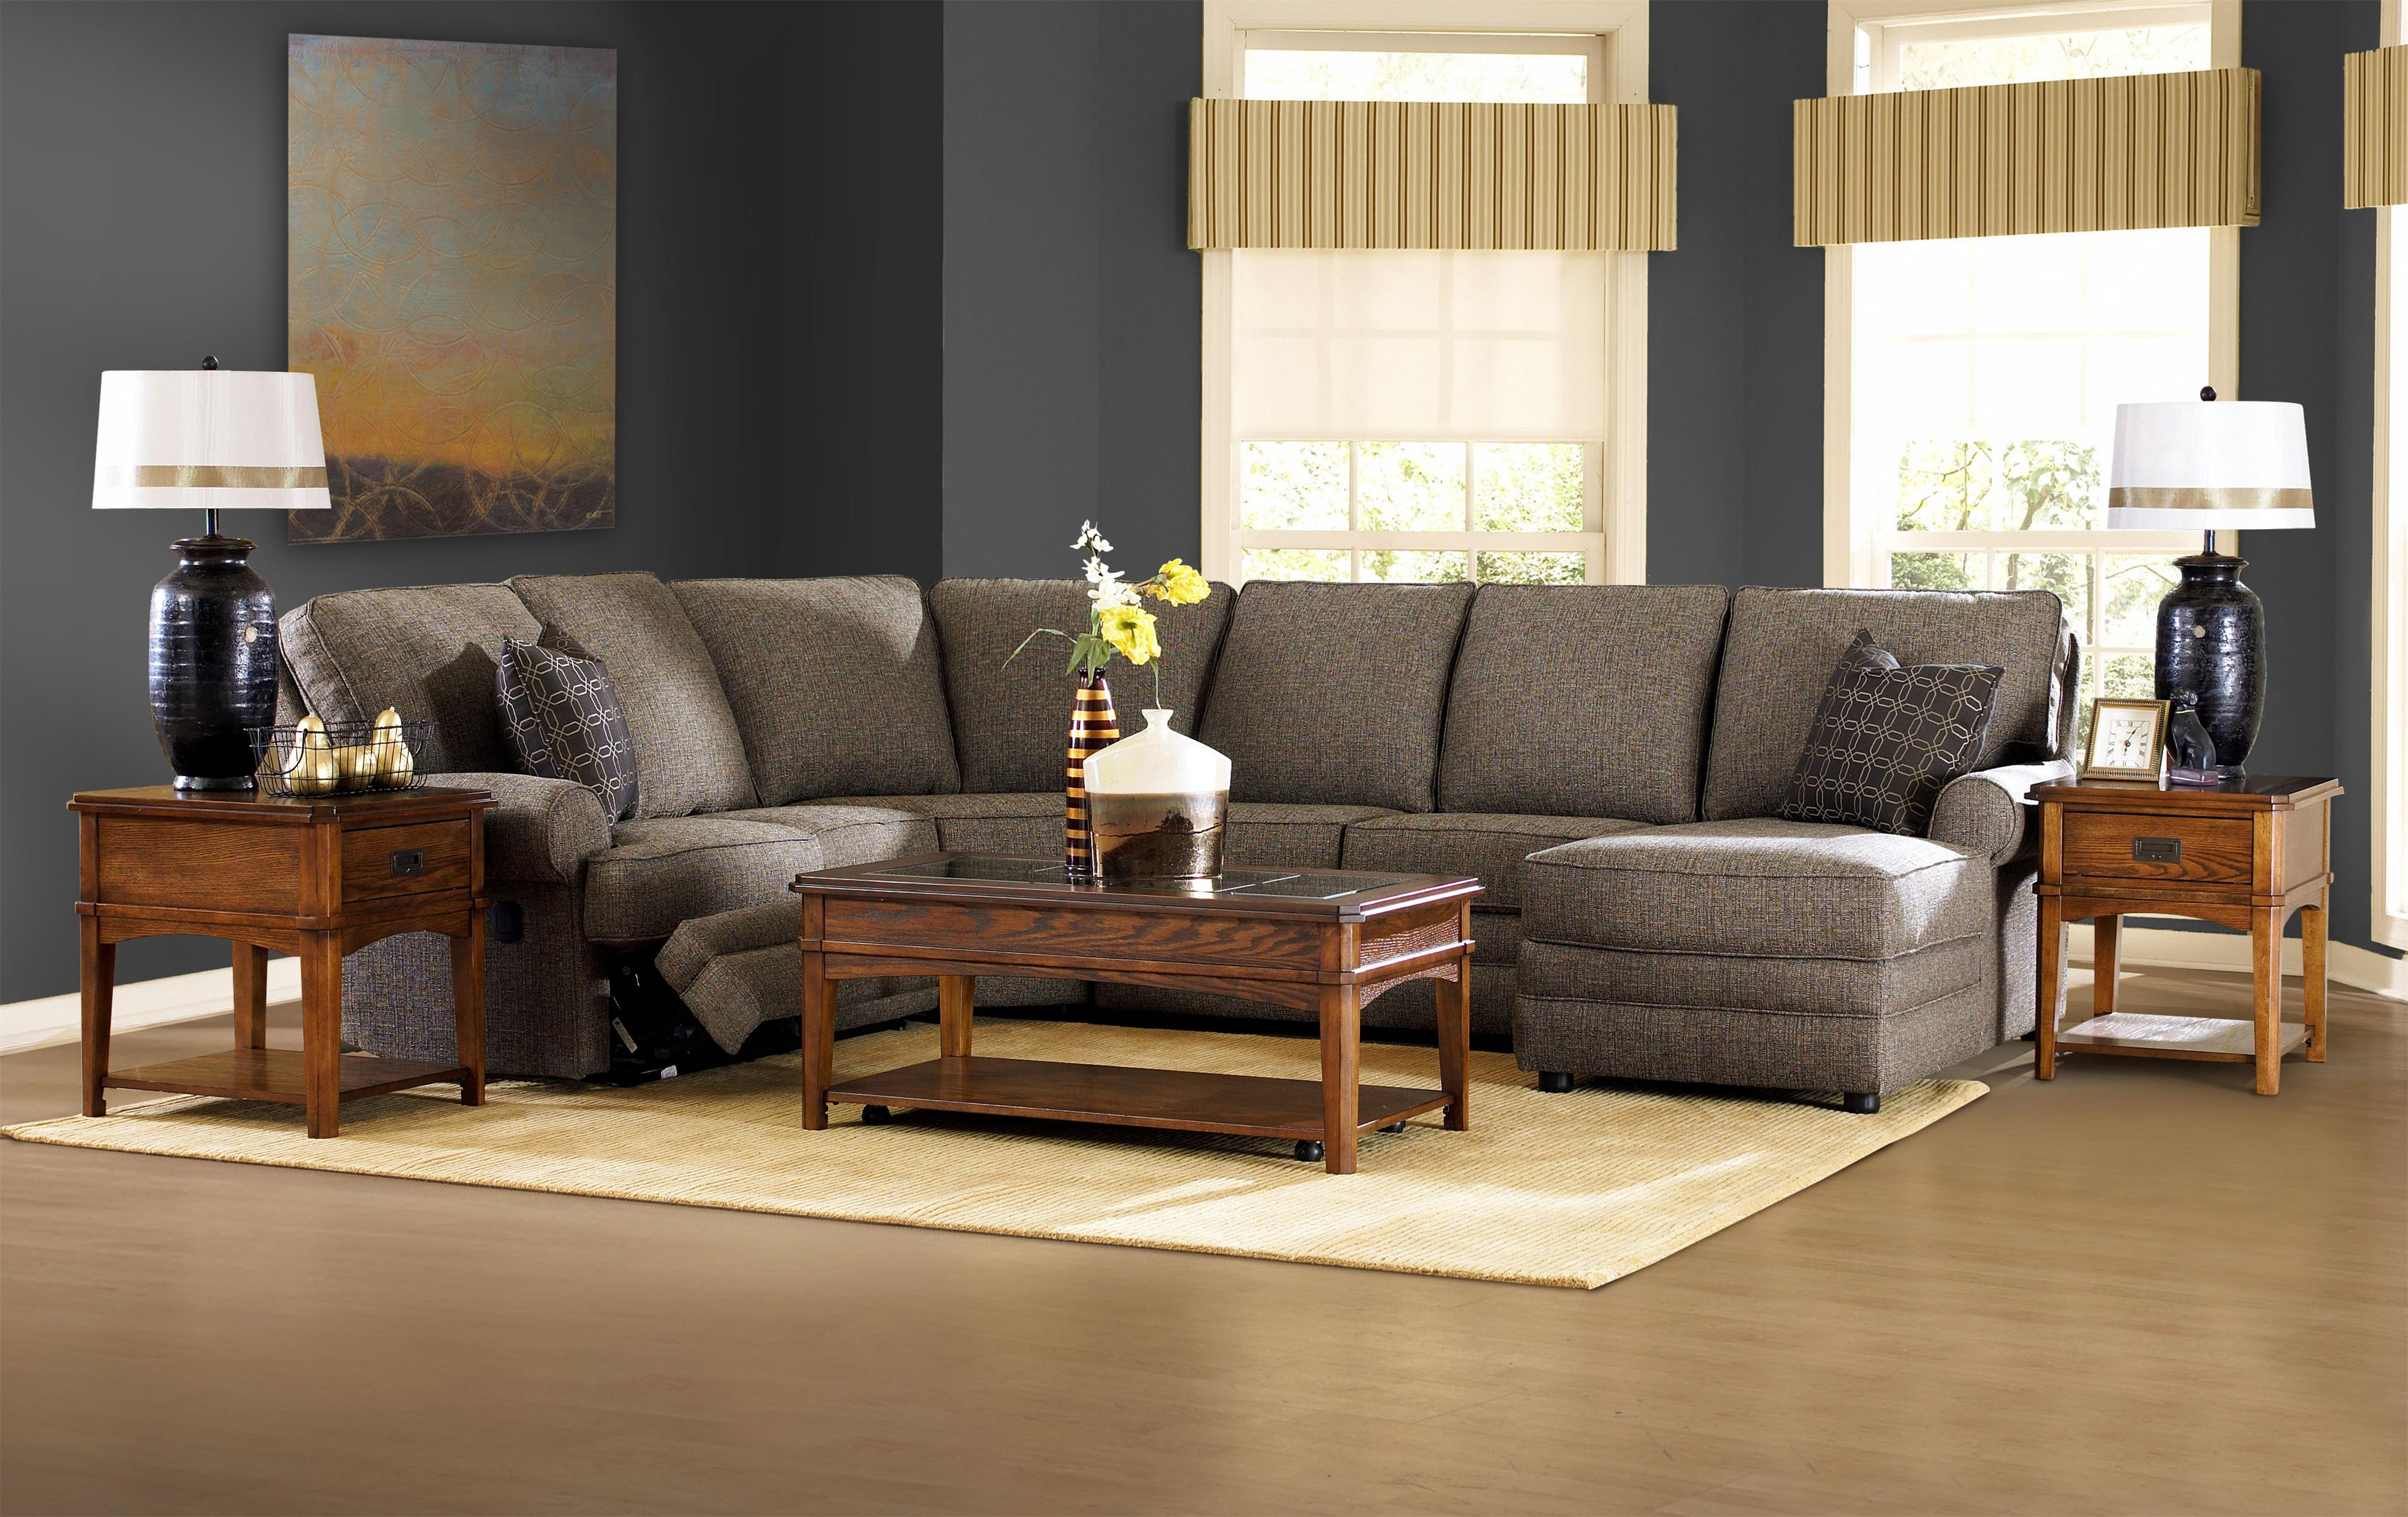 Klaussner Belleview Transitional Dual Reclining Sofa Value City